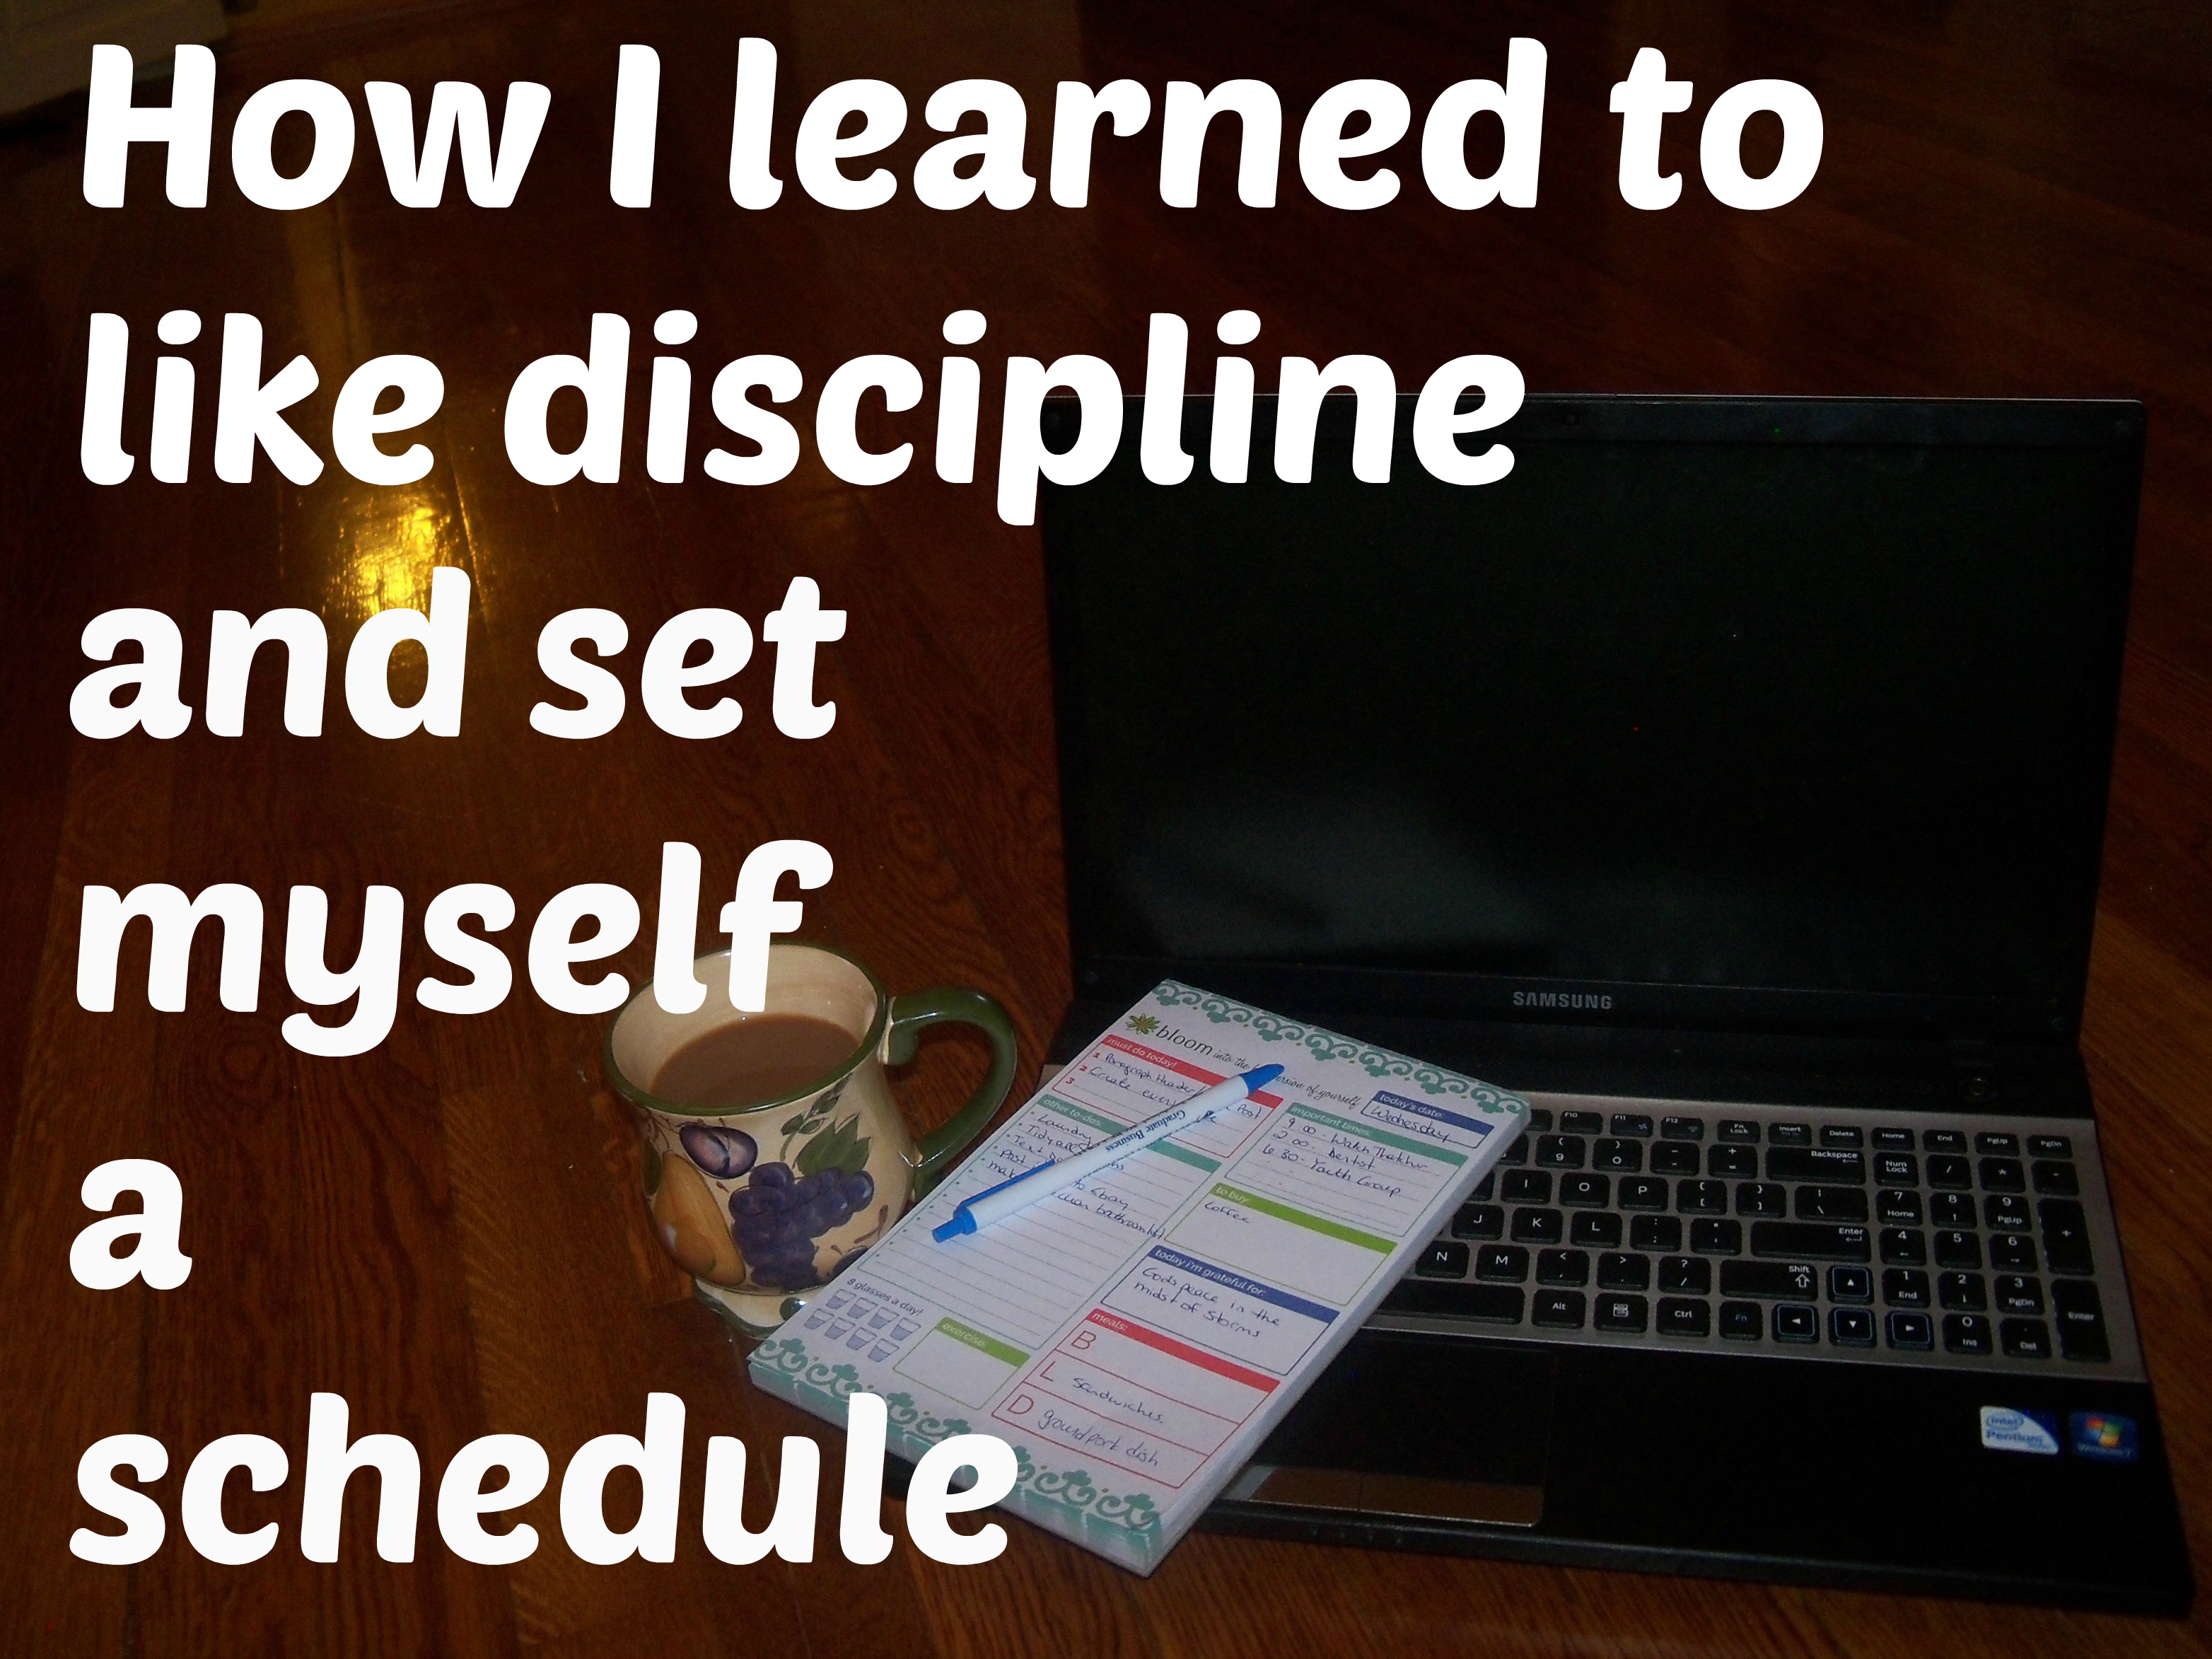 How I learned to like discipline and set myself a schedule